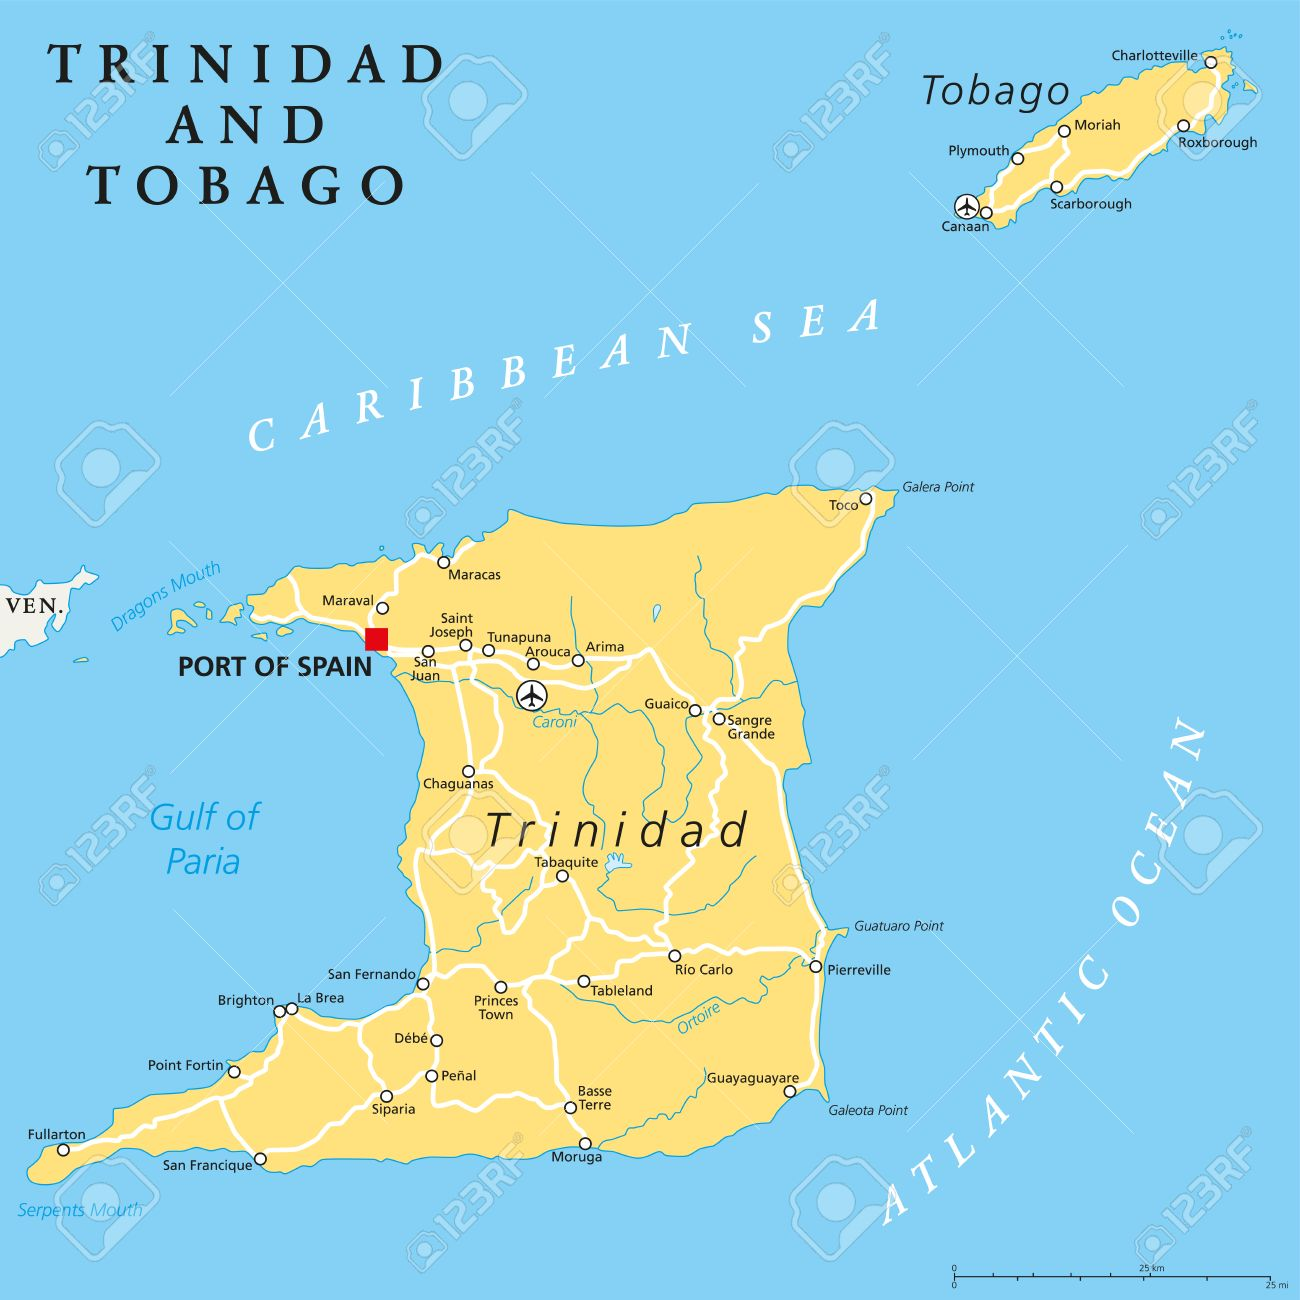 Trinidad And Tobago Political Map With Capital Port Of Spain - Spain political map